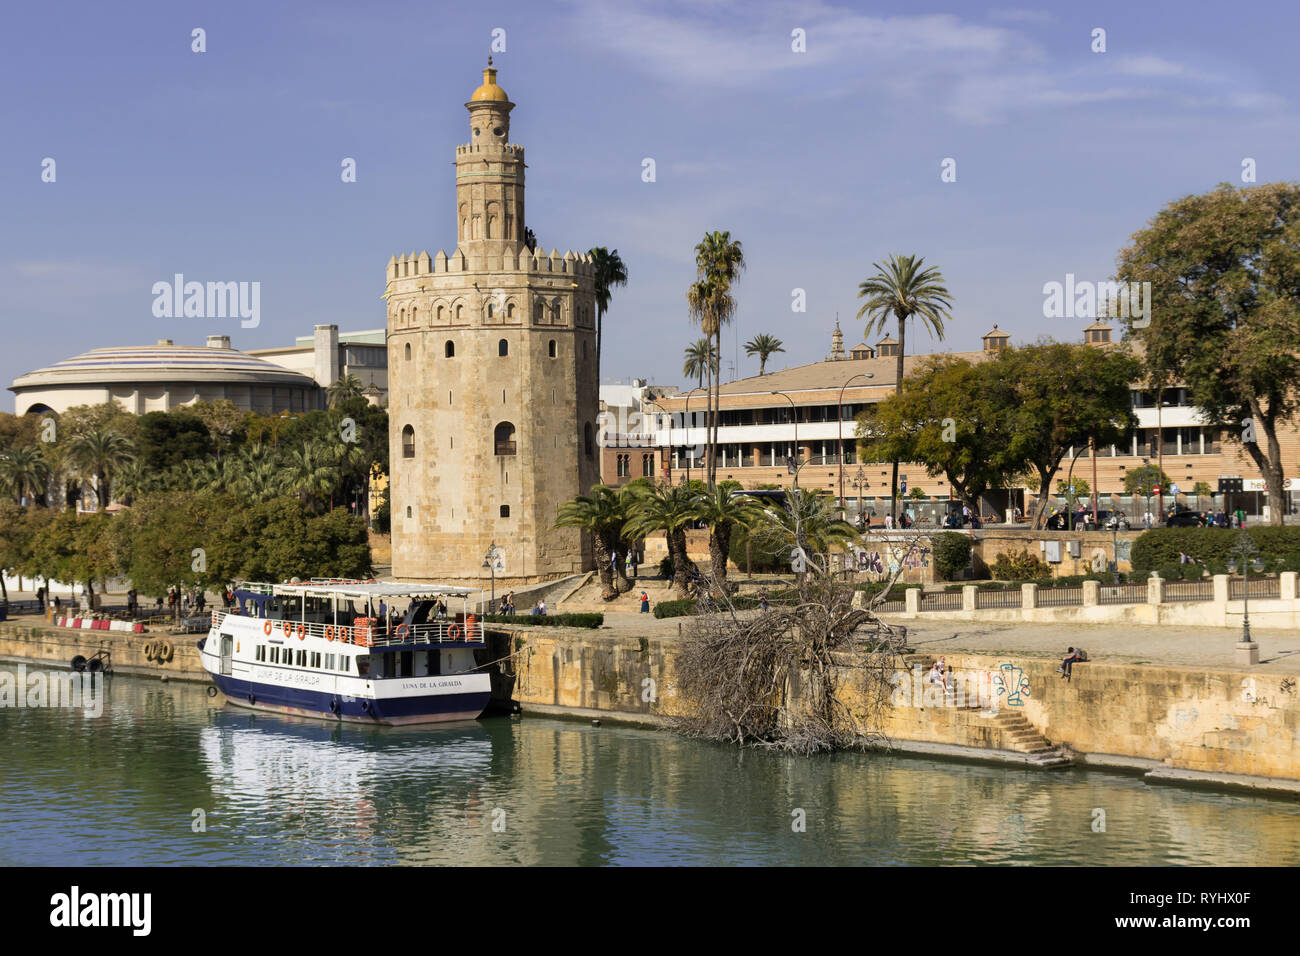 View of the Torre del Oro of Seville on the Guadalquivir river, Seville, Spain, March 03, 2019 Stock Photo